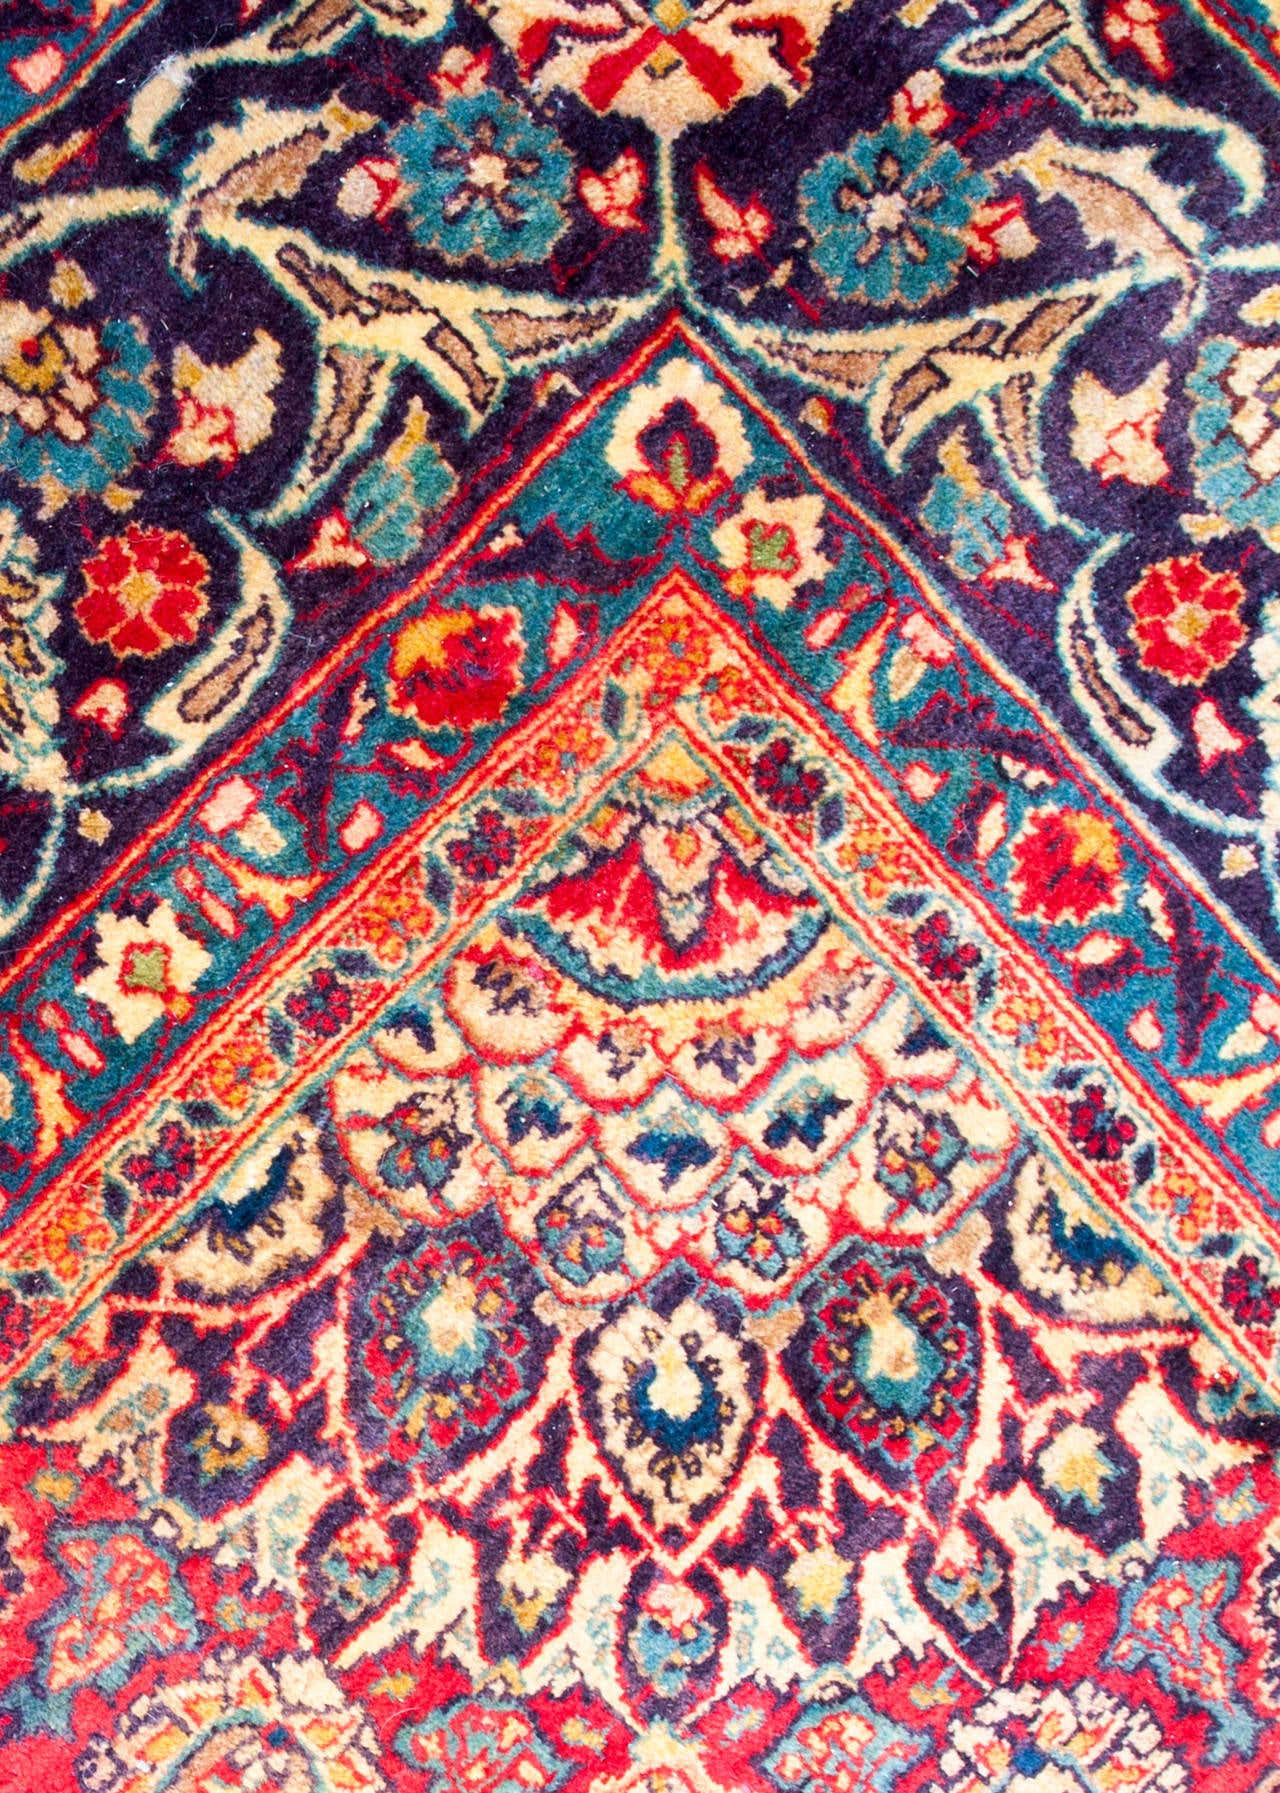 Palace Sized Persian Rug For Sale At 1stdibs